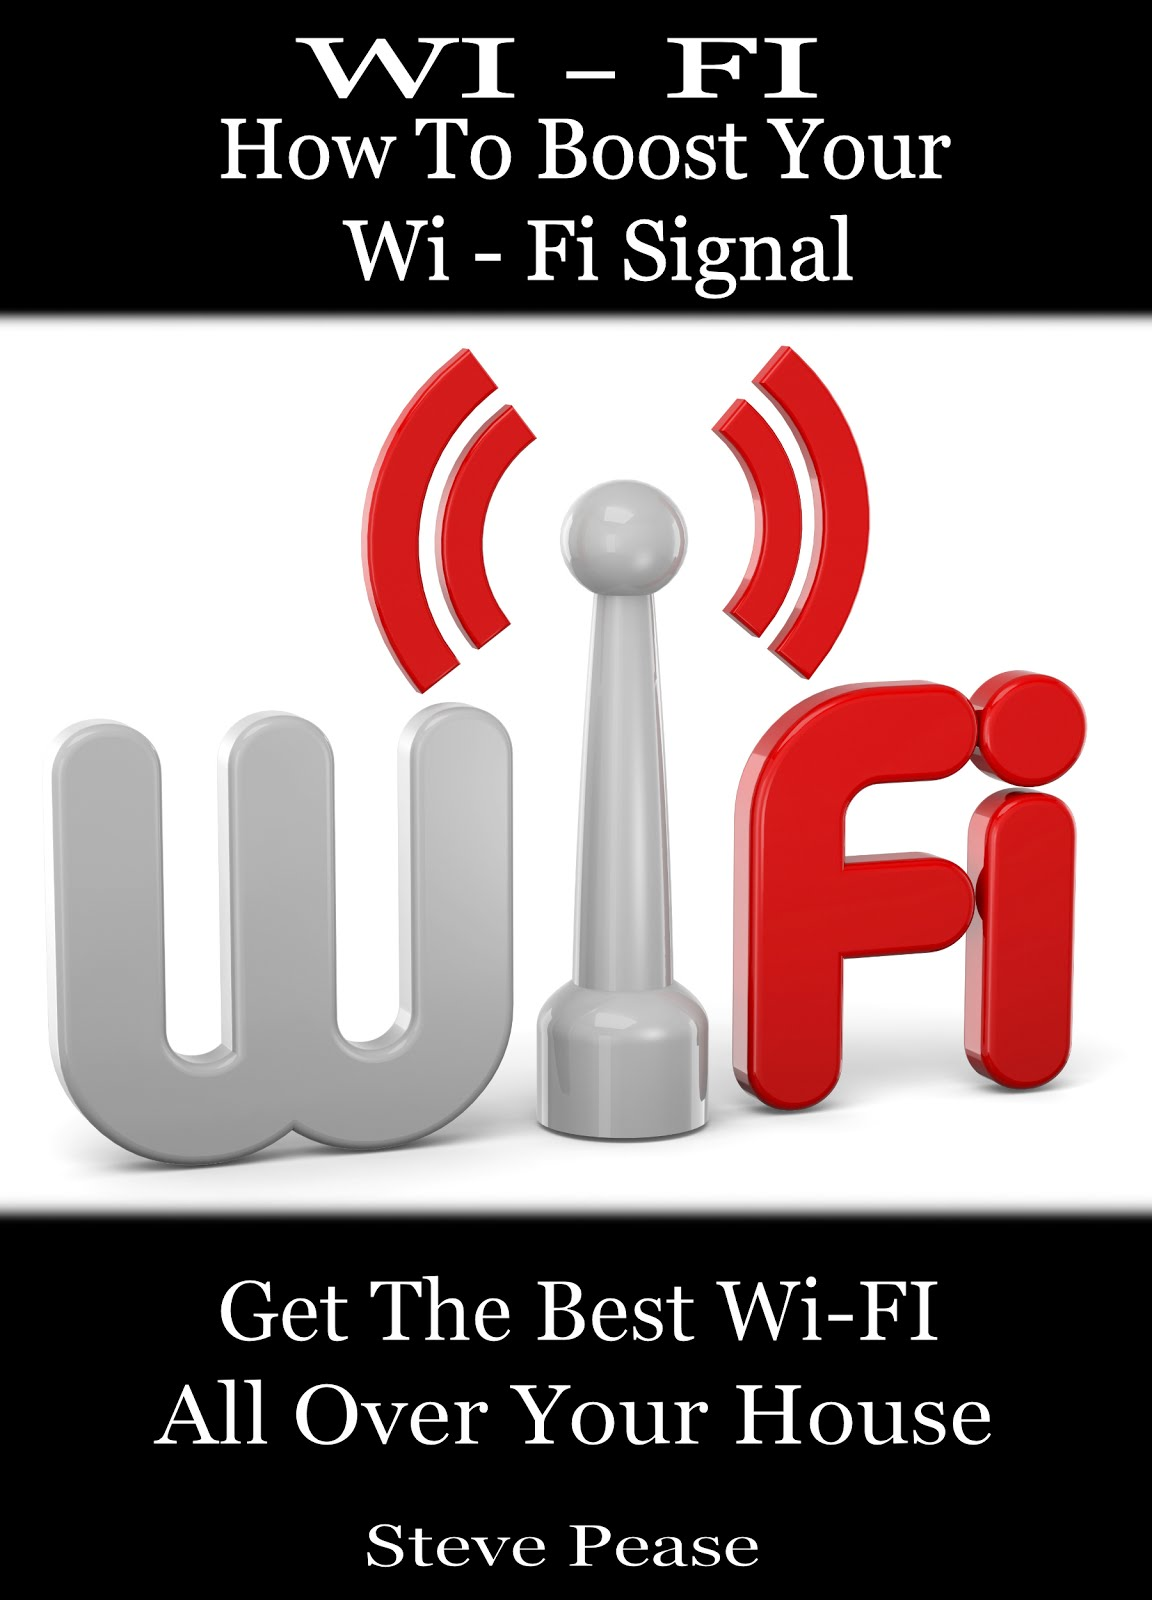 GET BETTER WI FI